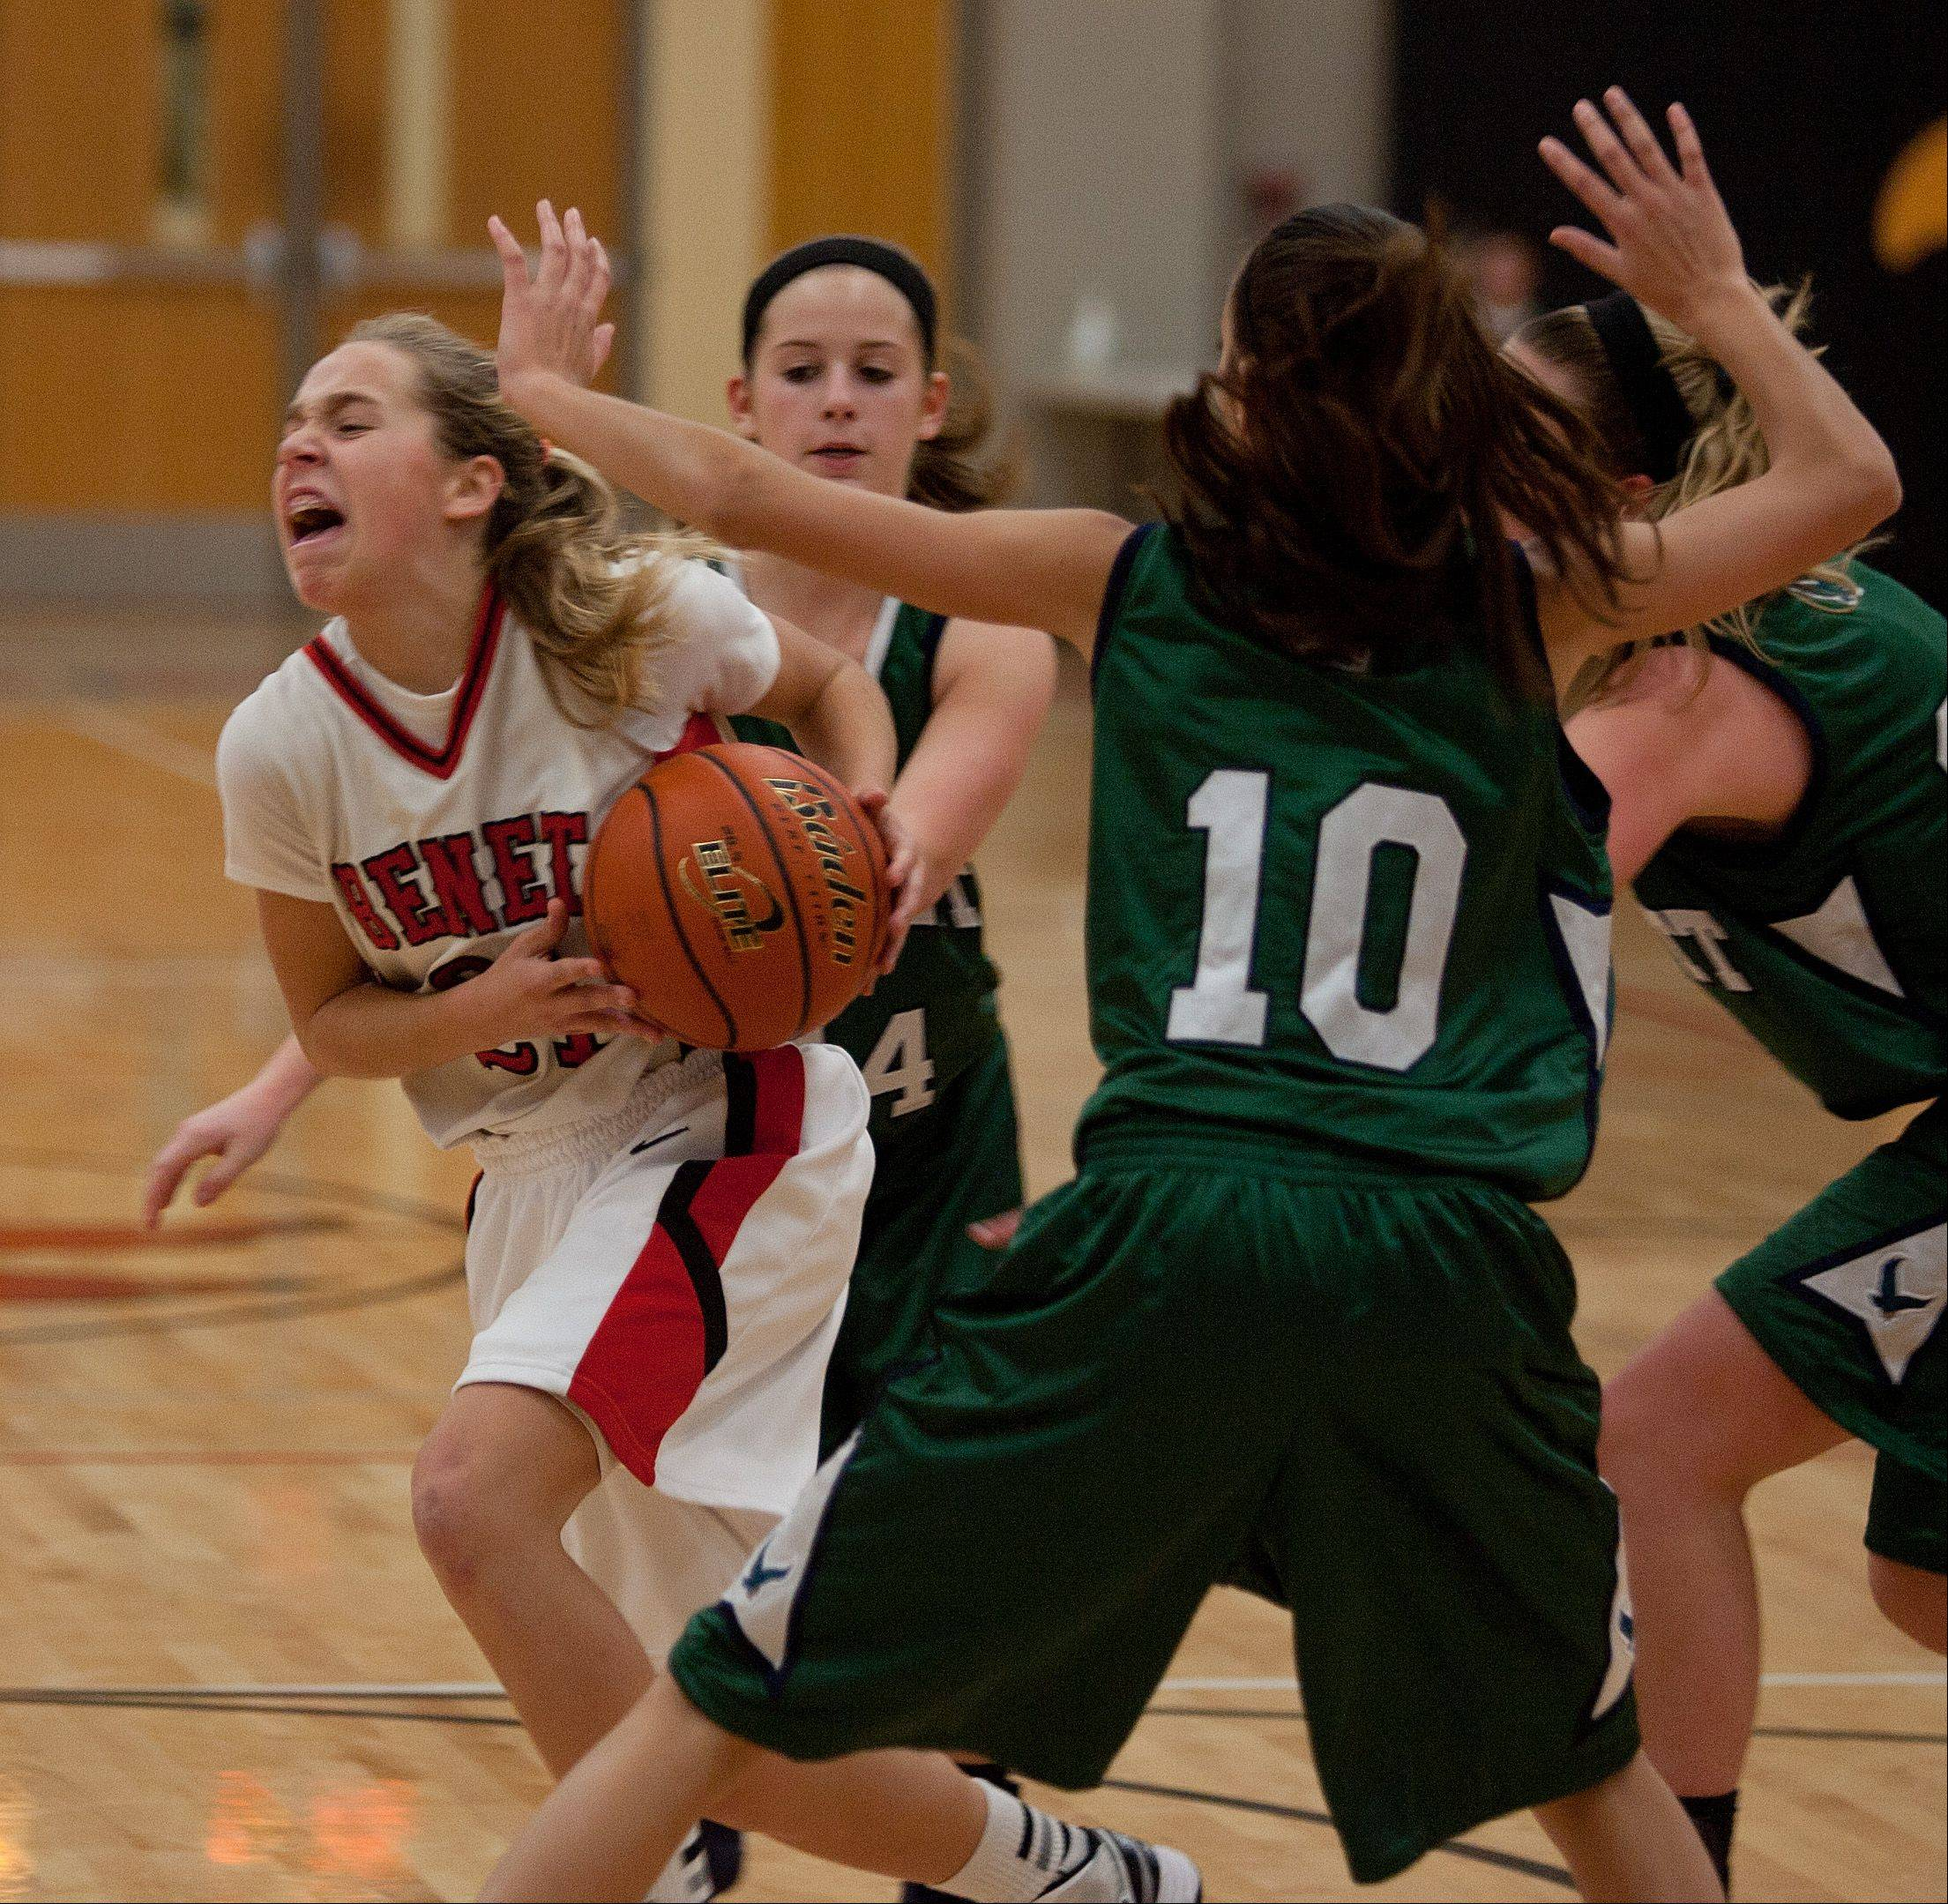 Benet's Kathleen Doyle, left, drives past Bartlett's Nicole Gerdevich, during girls basketball action at Benet.